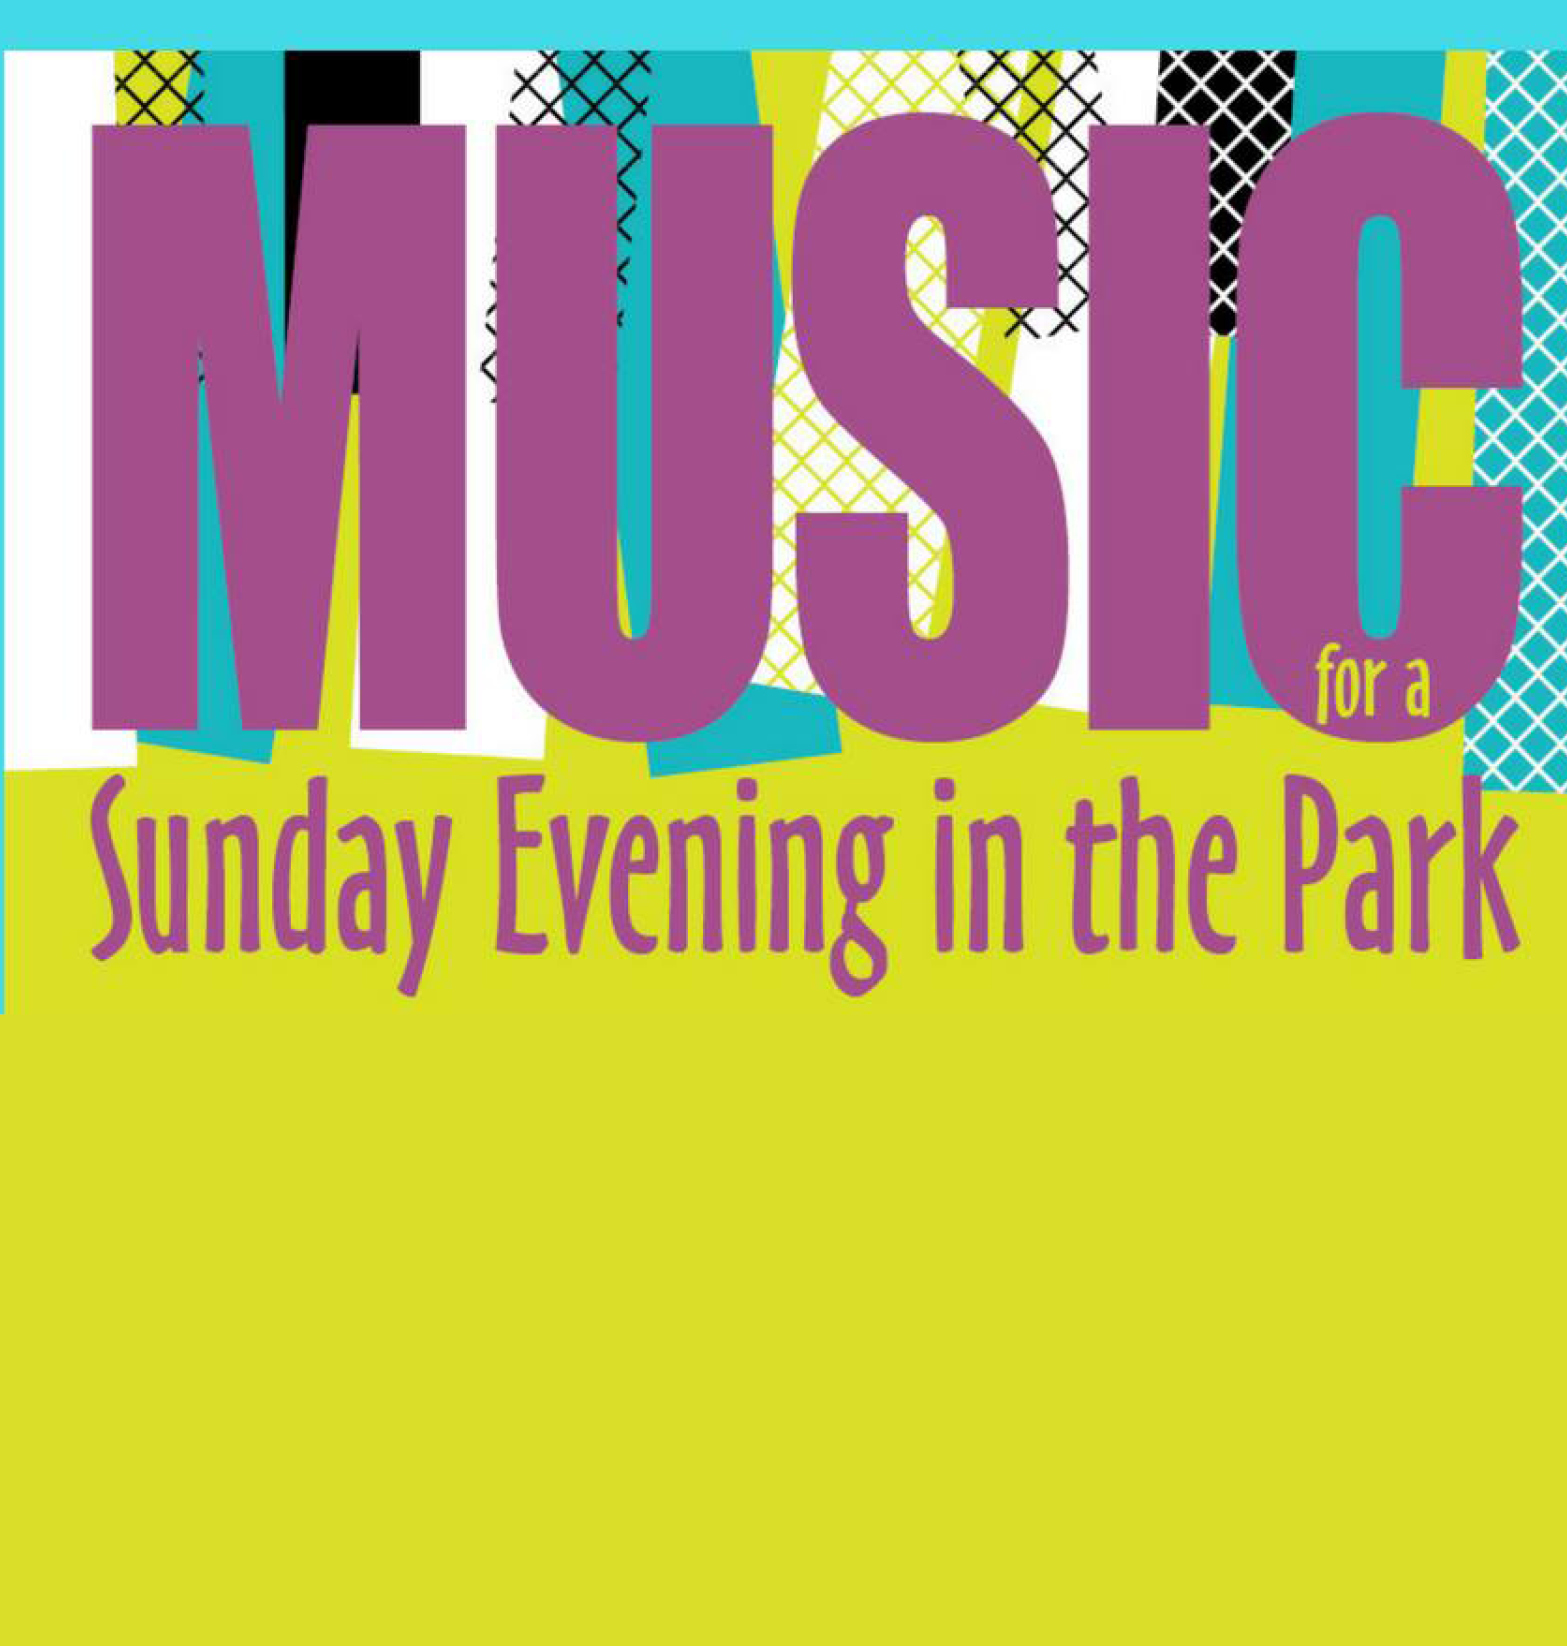 Music for a Sunday Evening in the Park